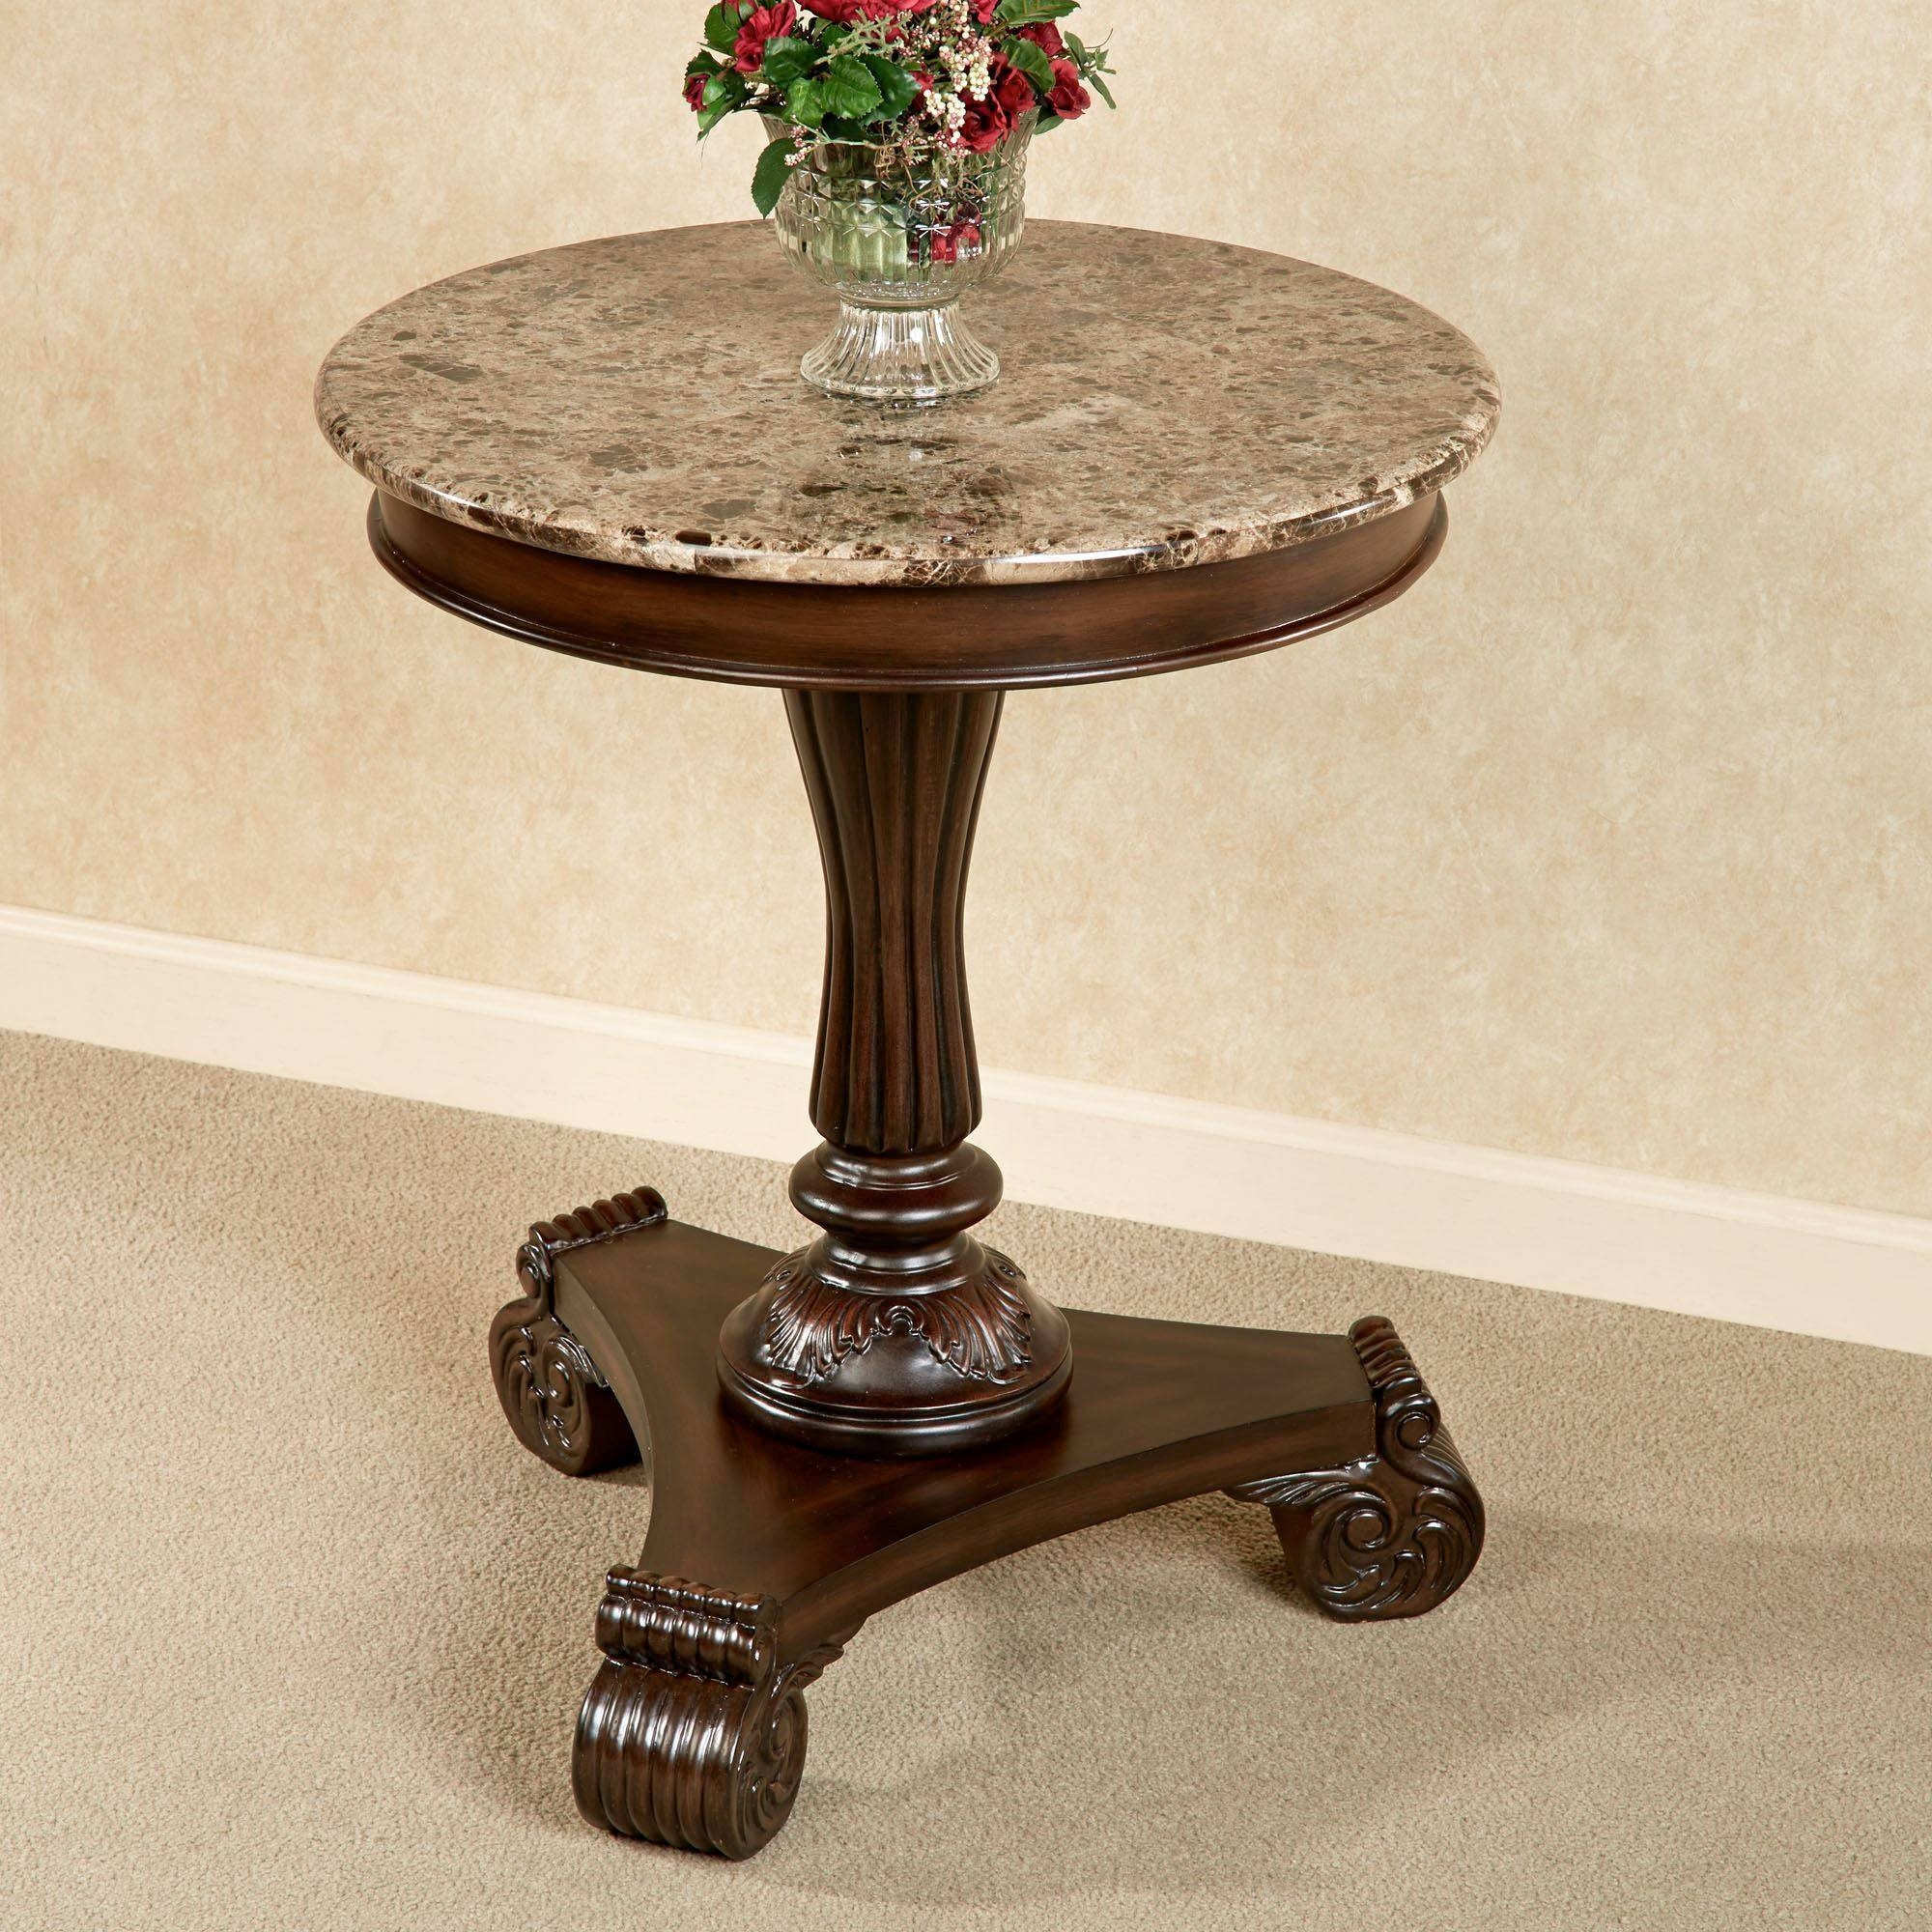 Accent Tables | Touch Of Class within Rounded Corner Coffee Tables (Image 3 of 30)